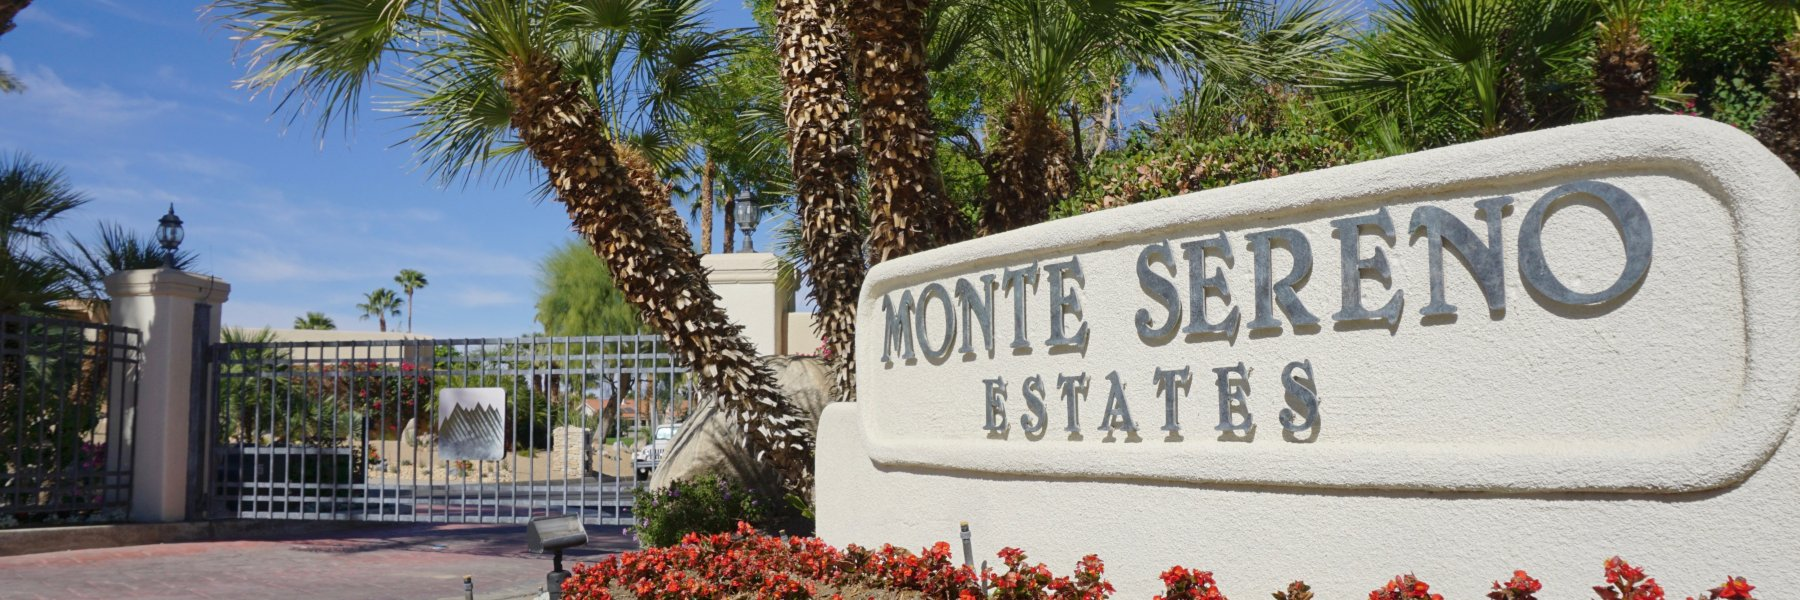 Monte Sereno Estates is a community of homes in Indian Wells, California